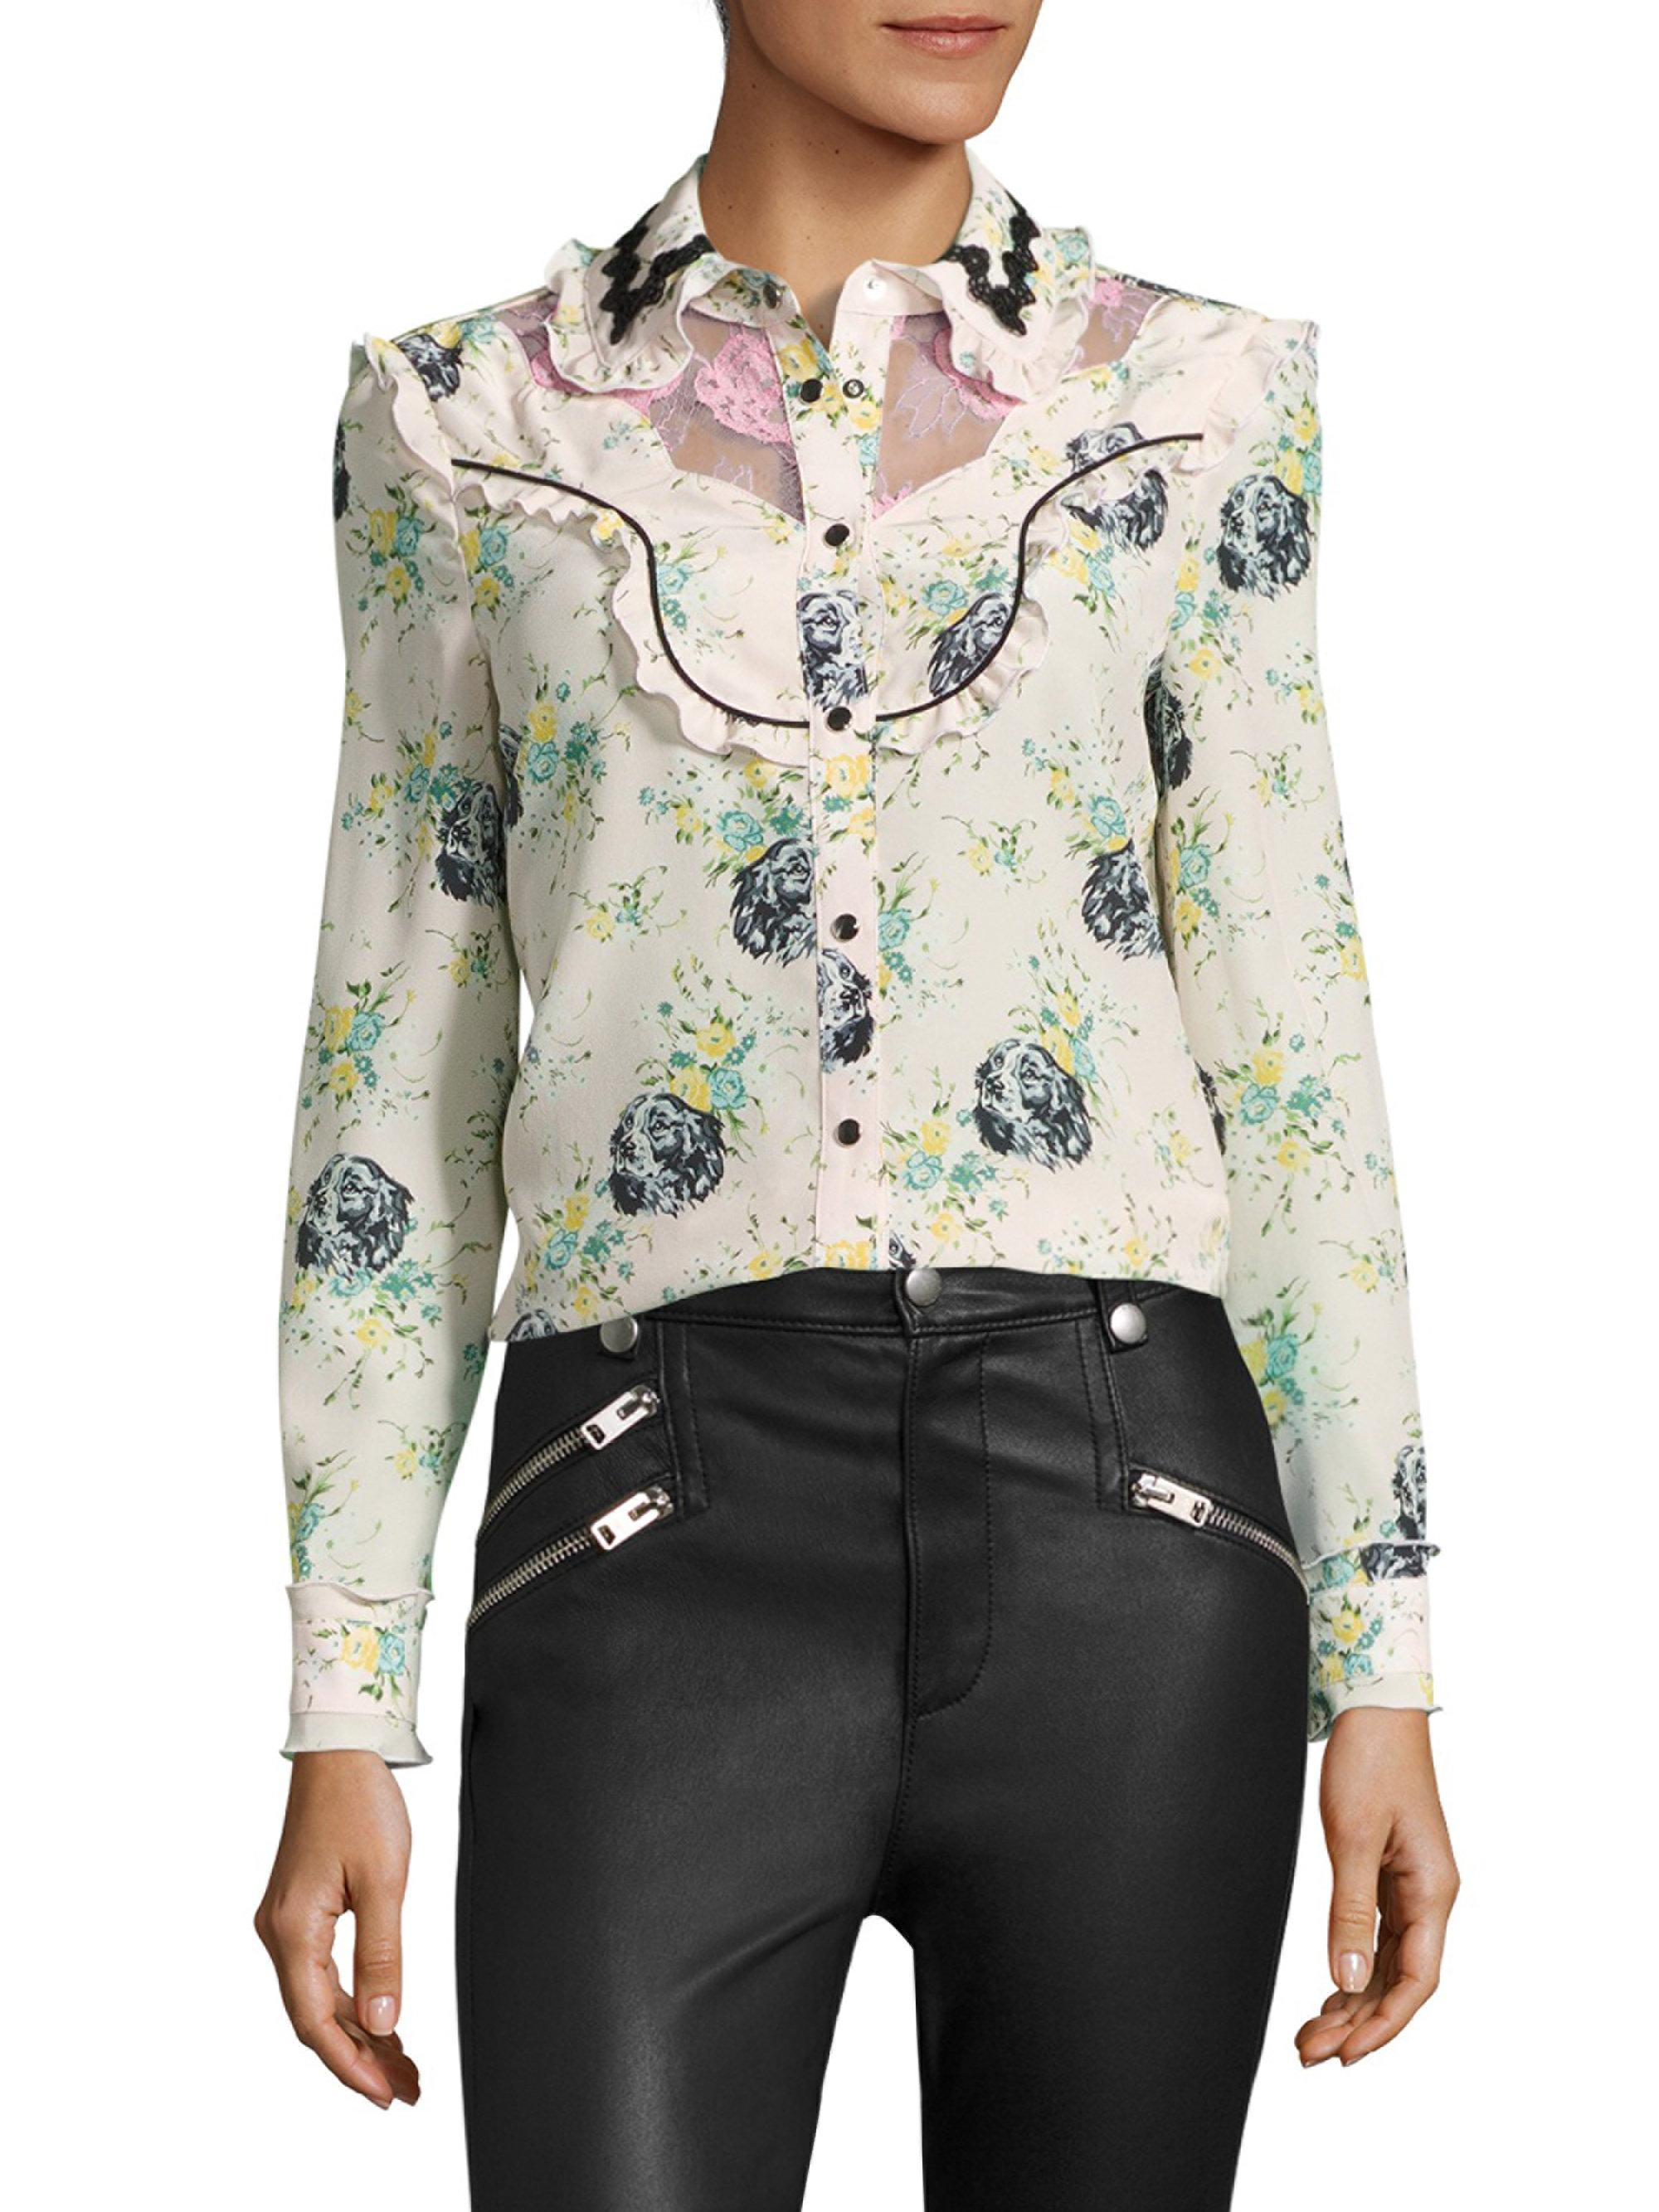 02e3ad5820508 Lyst - COACH Printed Silk   Lace Western Blouse